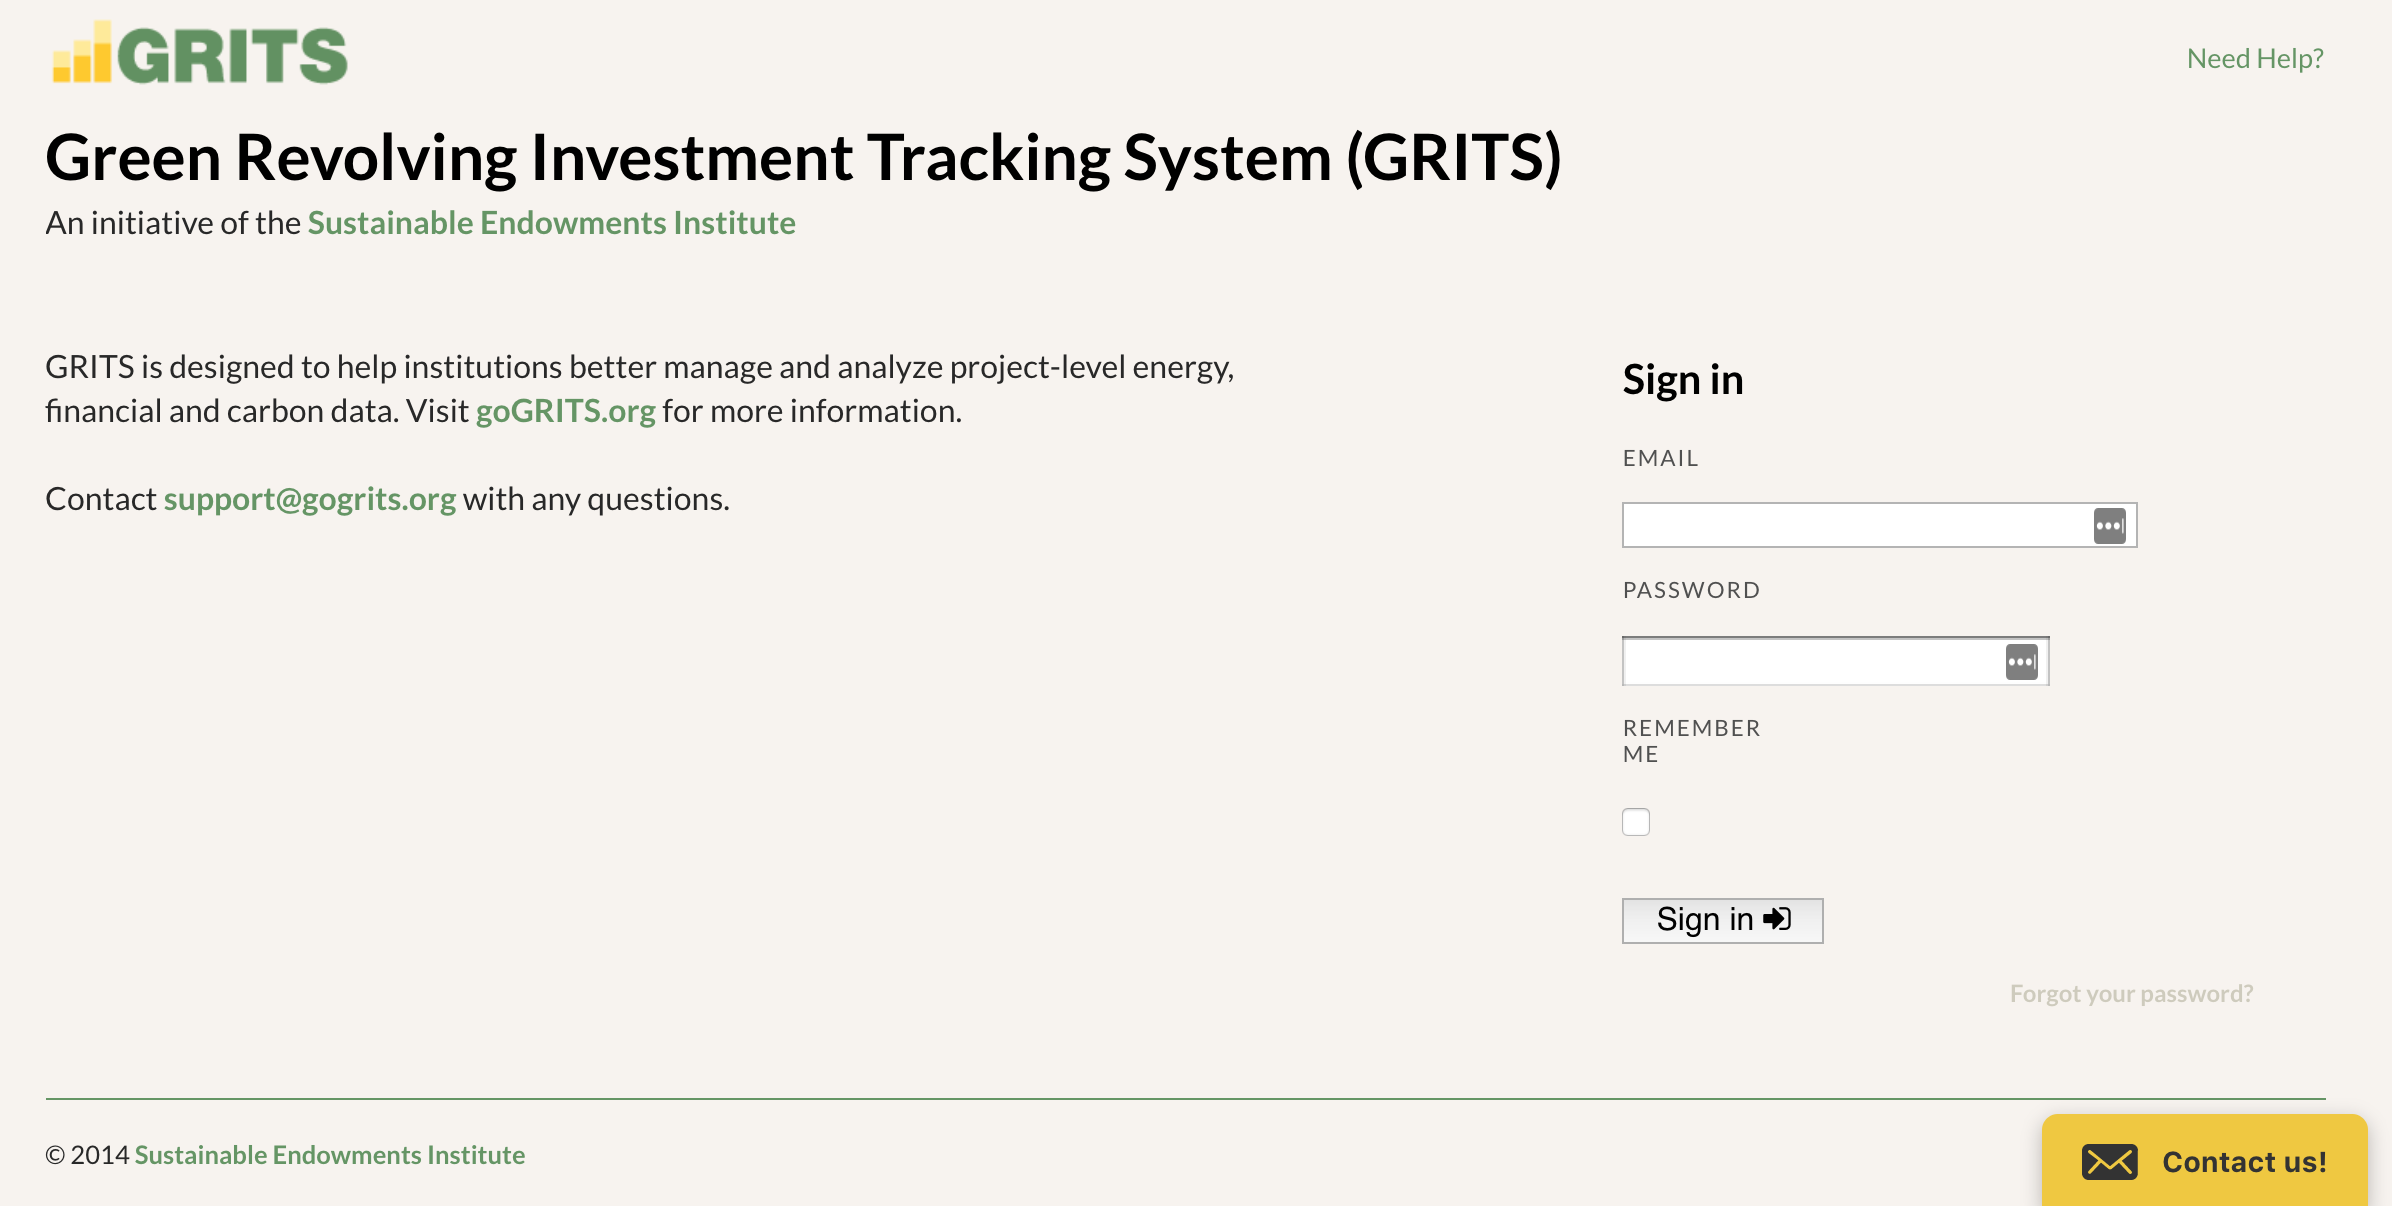 GRITS Sign-in Page